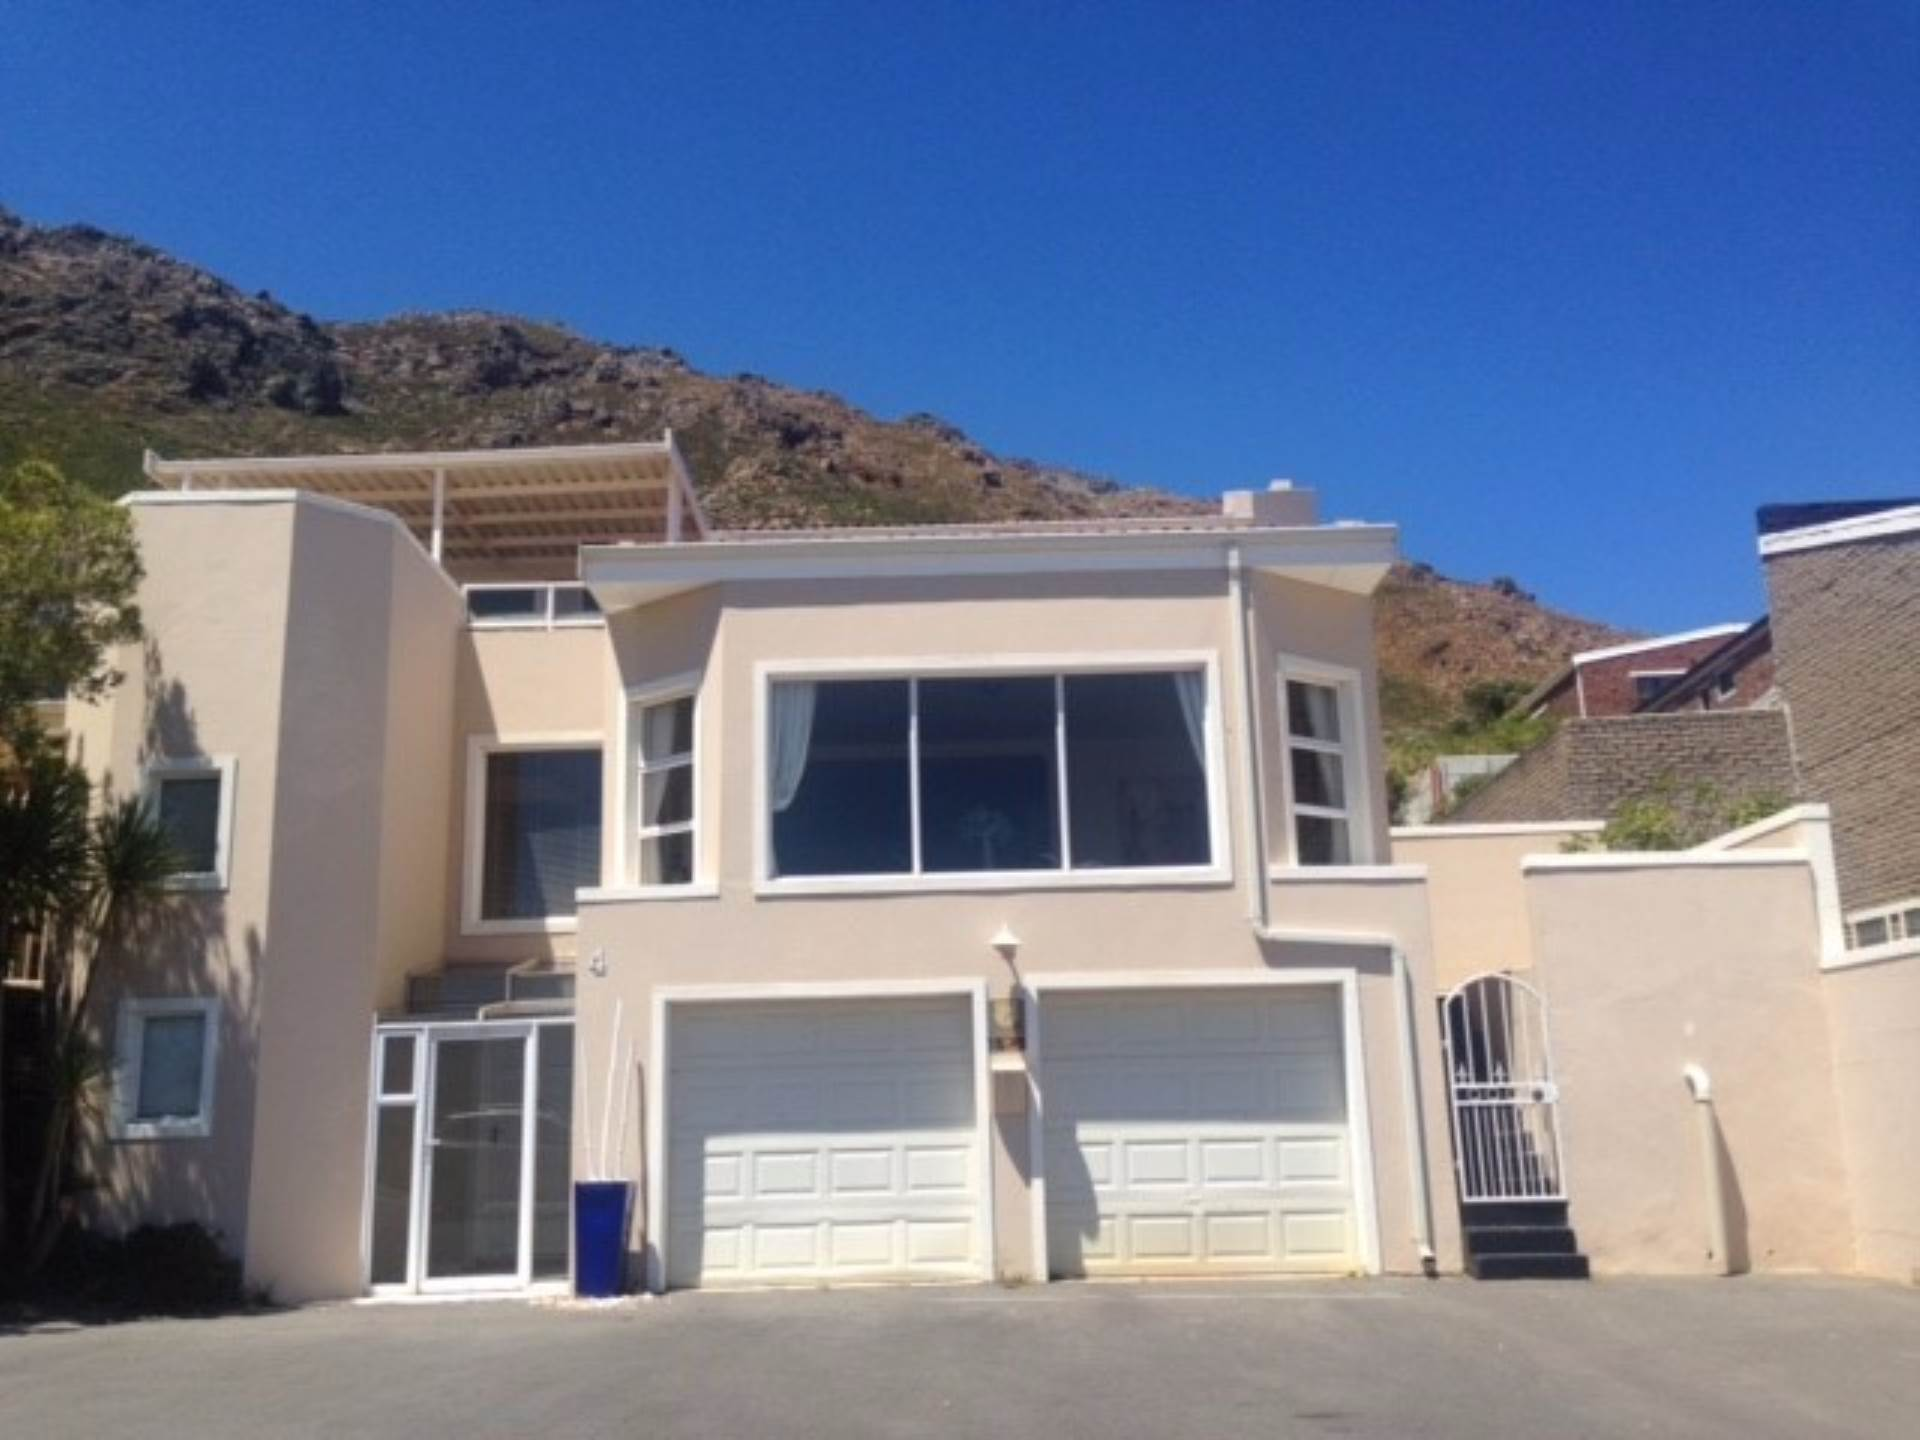 4 BedroomHouse To Rent In Mountainside